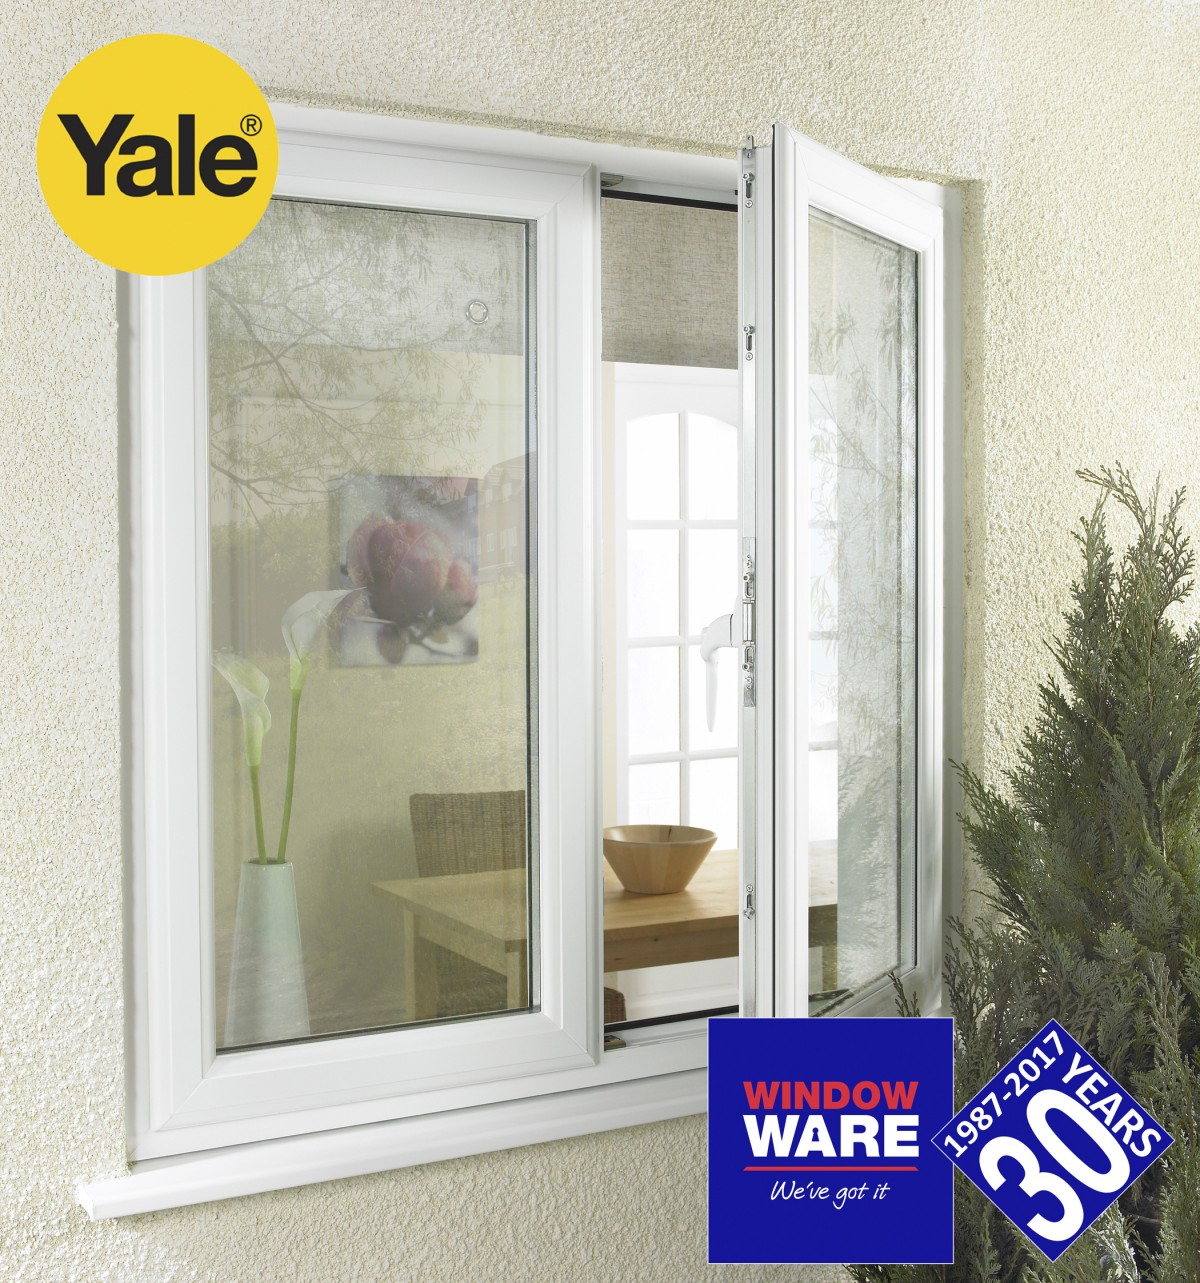 Window ware mow offers a secure locking system for french for Double glazing offers